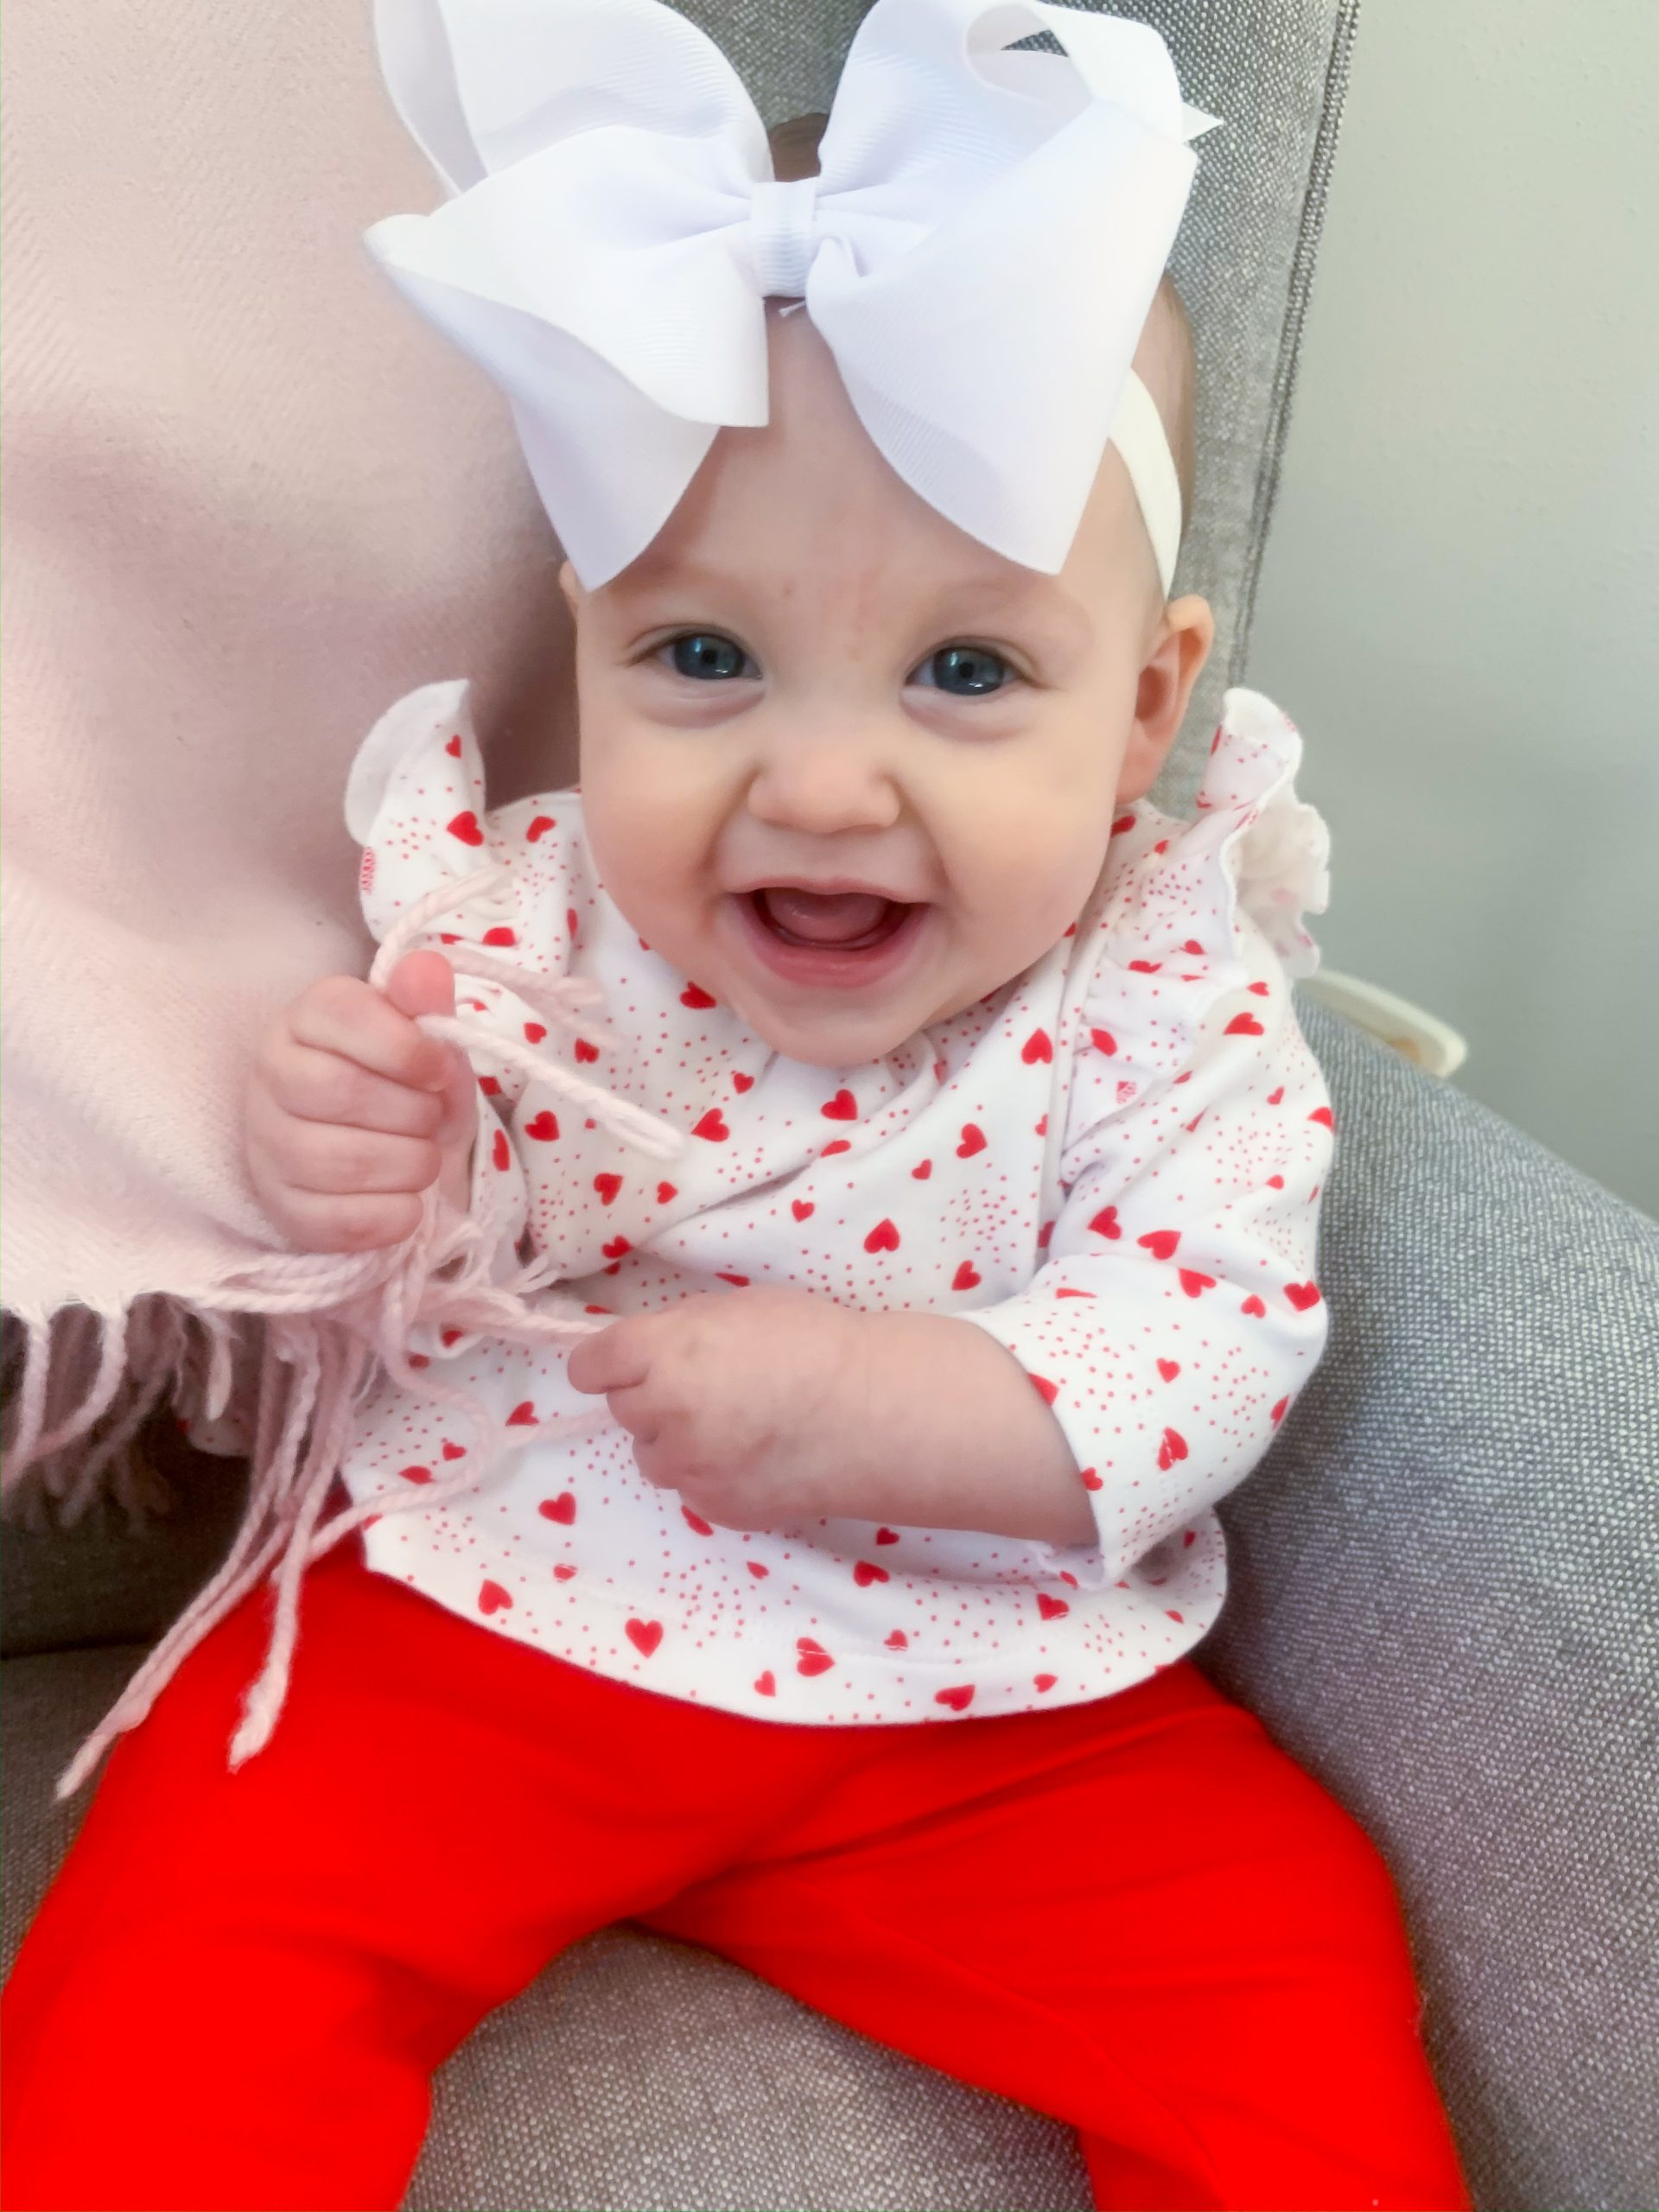 8 month old baby blog, 8 month old baby update